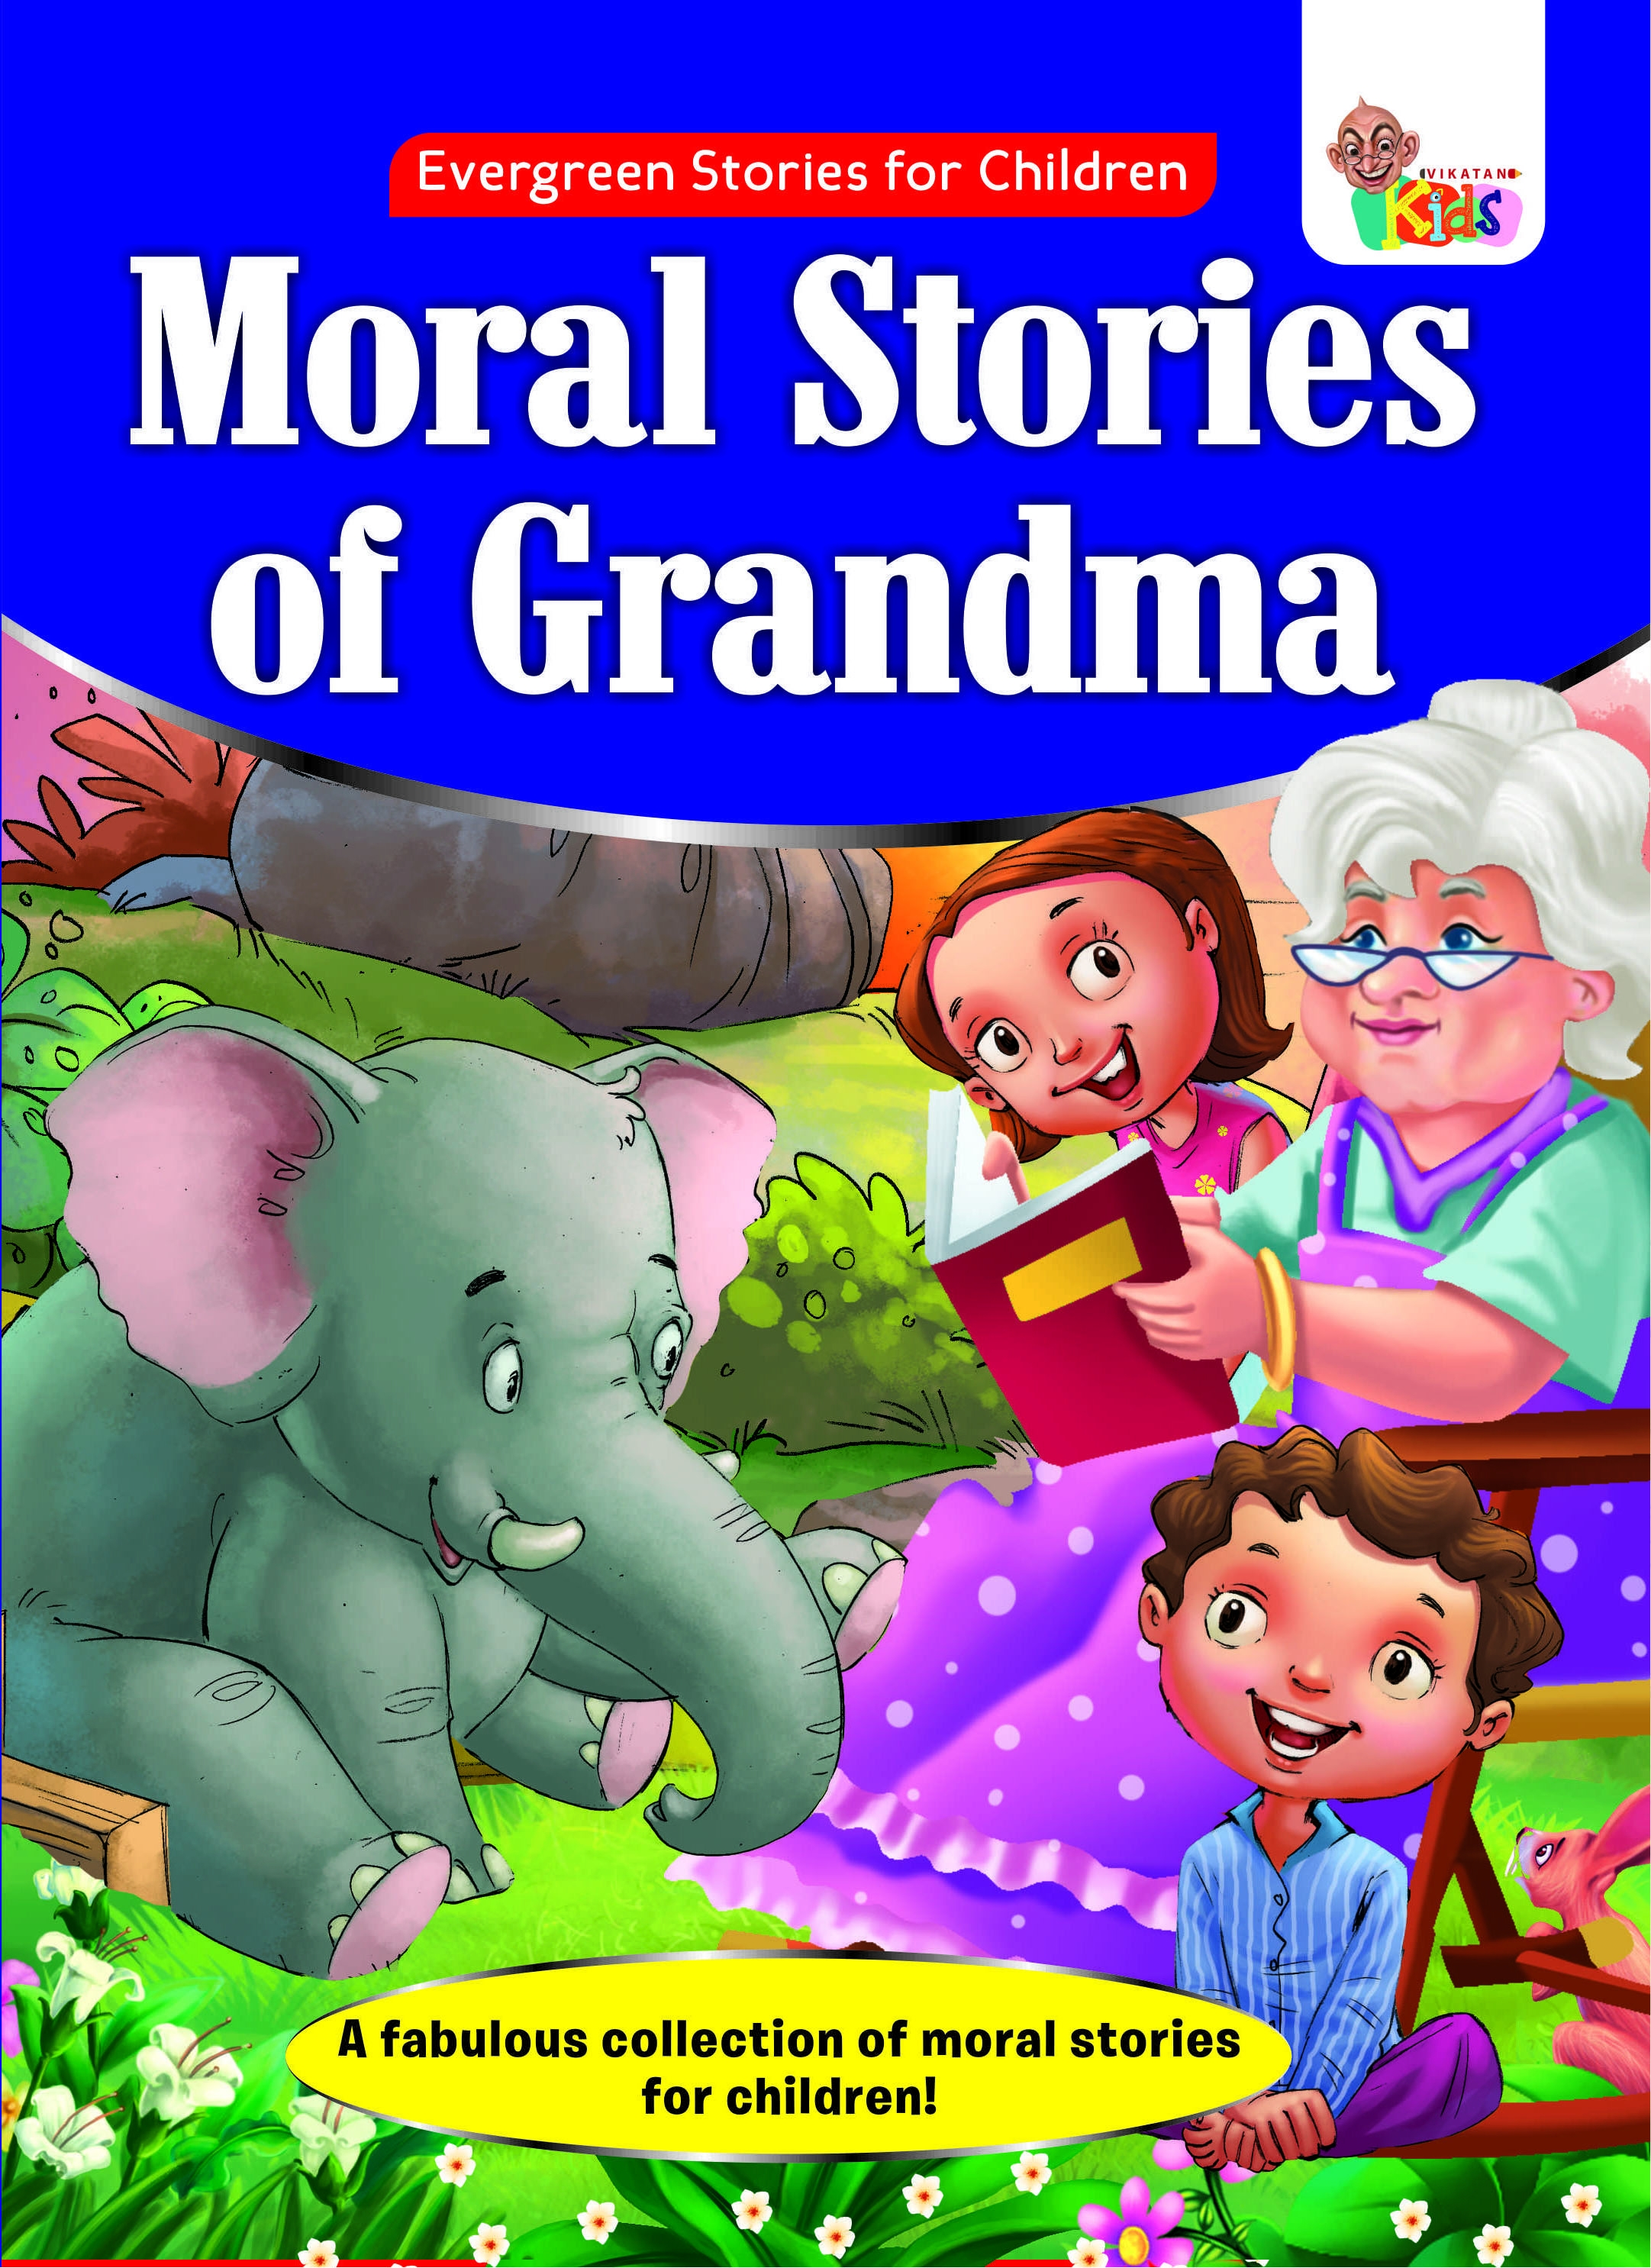 Moral Stories of Grandma